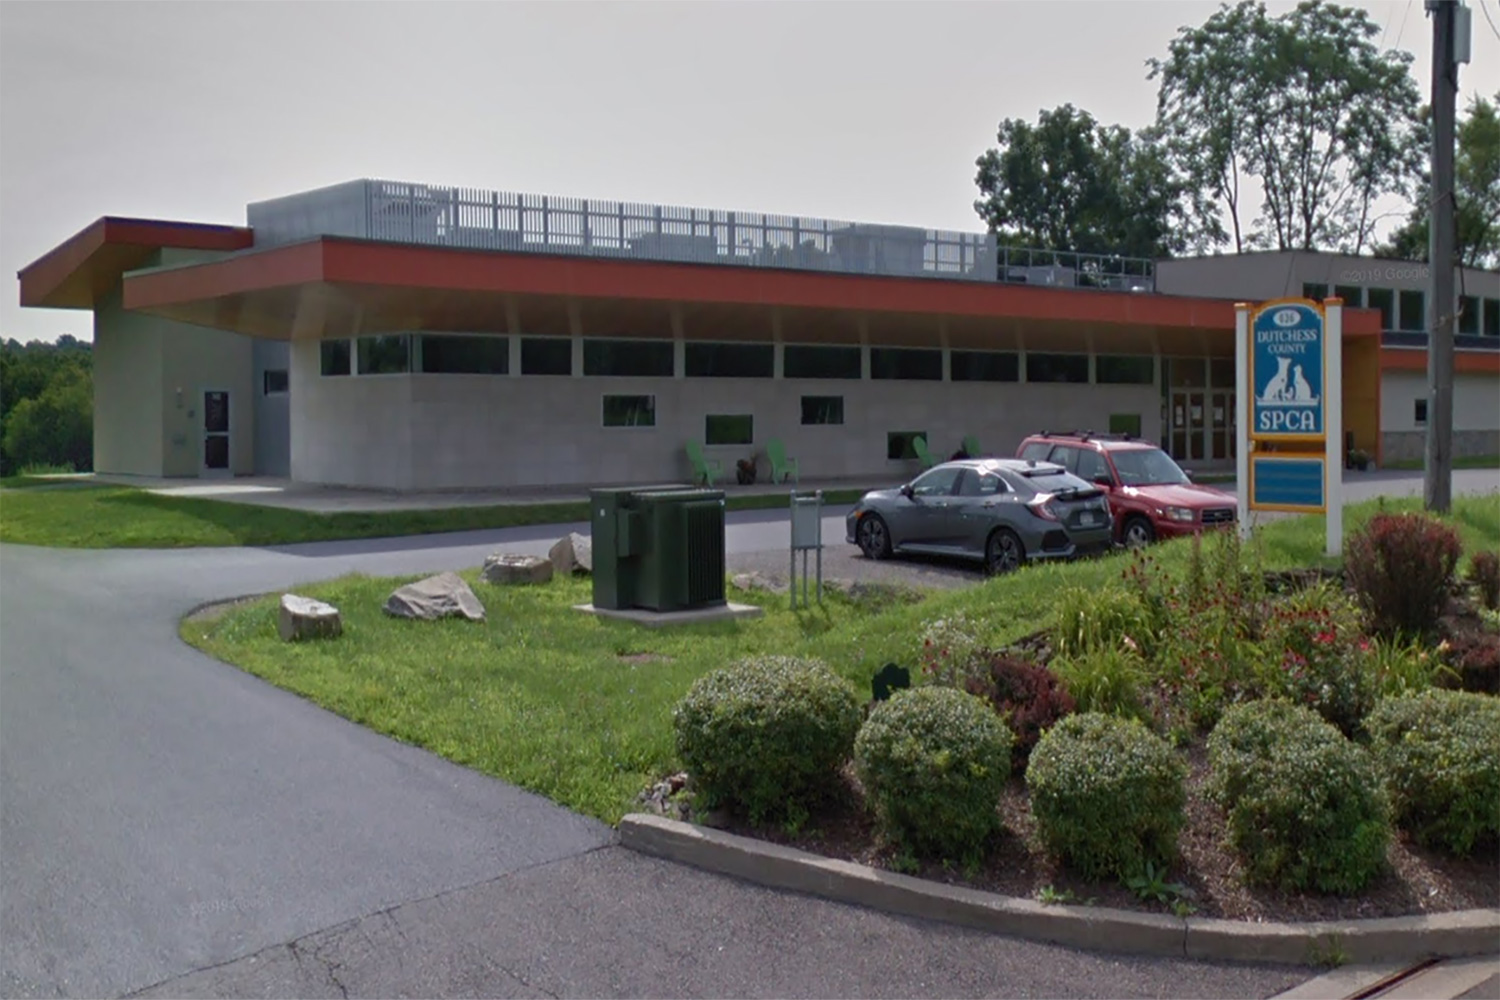 WSDG offered its services to design acoustic treatment for the Dutchess County Society for the Prevention of Cruelty to Animals in Hyde Park, NY. Exterior.